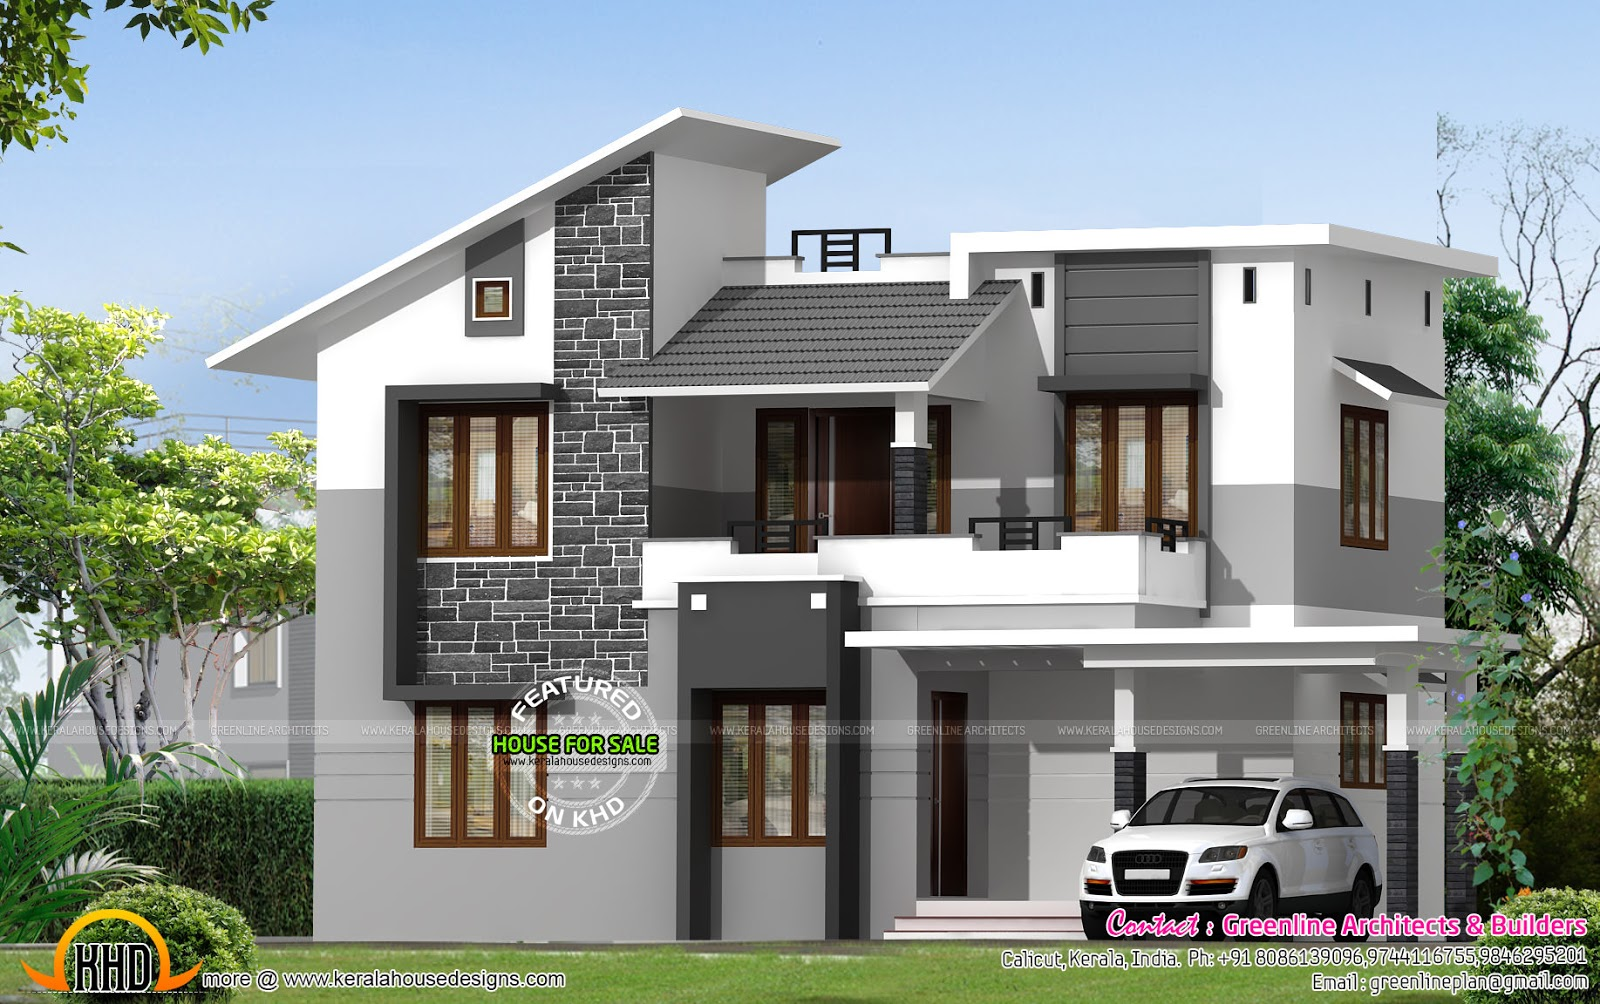 Villa for sale at calicut kerala kerala home design and for House arch design photos